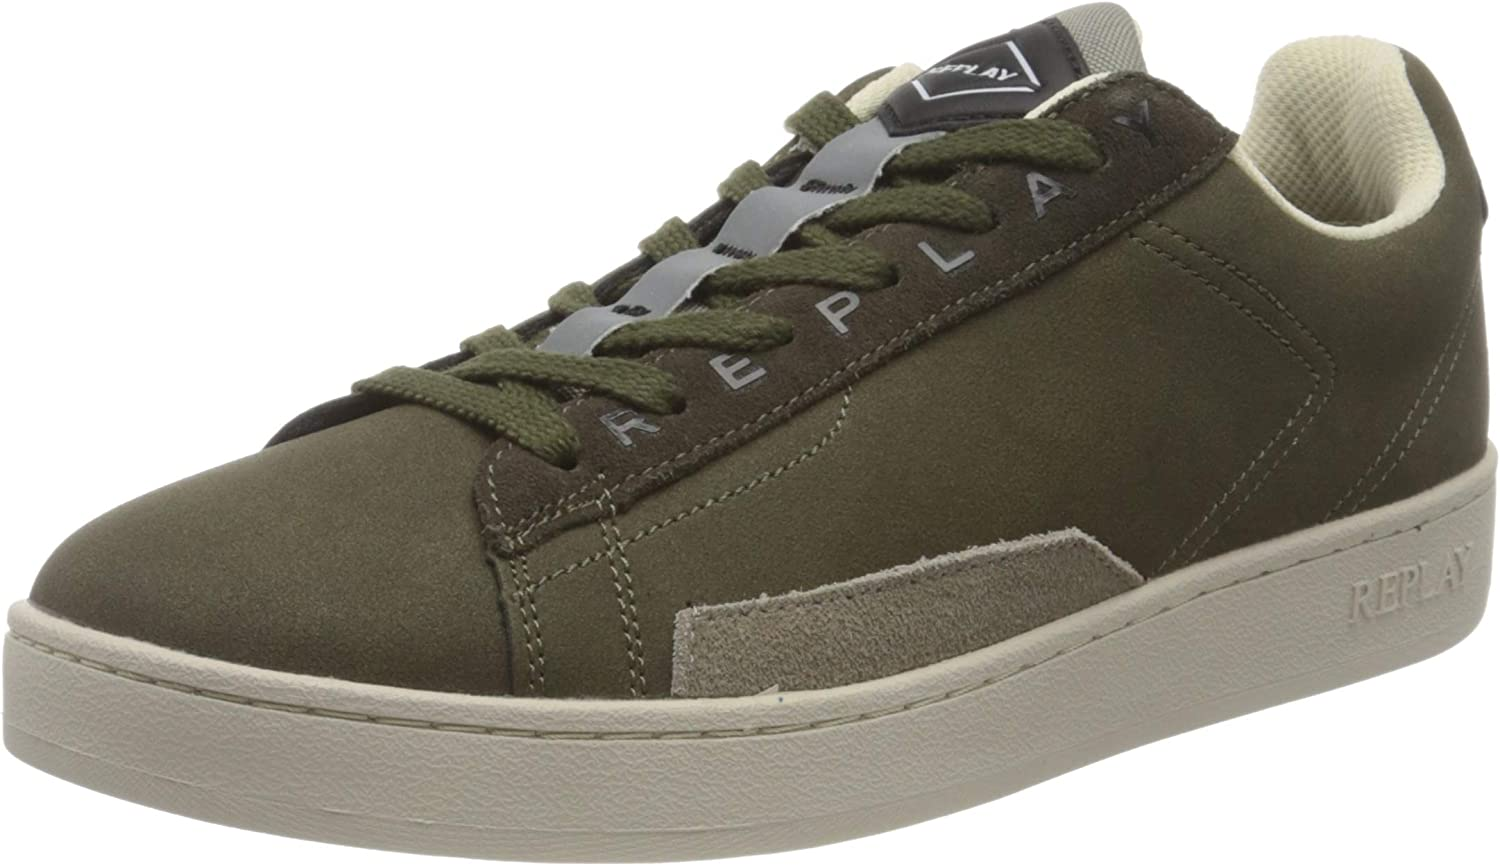 Replay Men's Outlet sale feature Low-Top Sneakers Tucson Mall